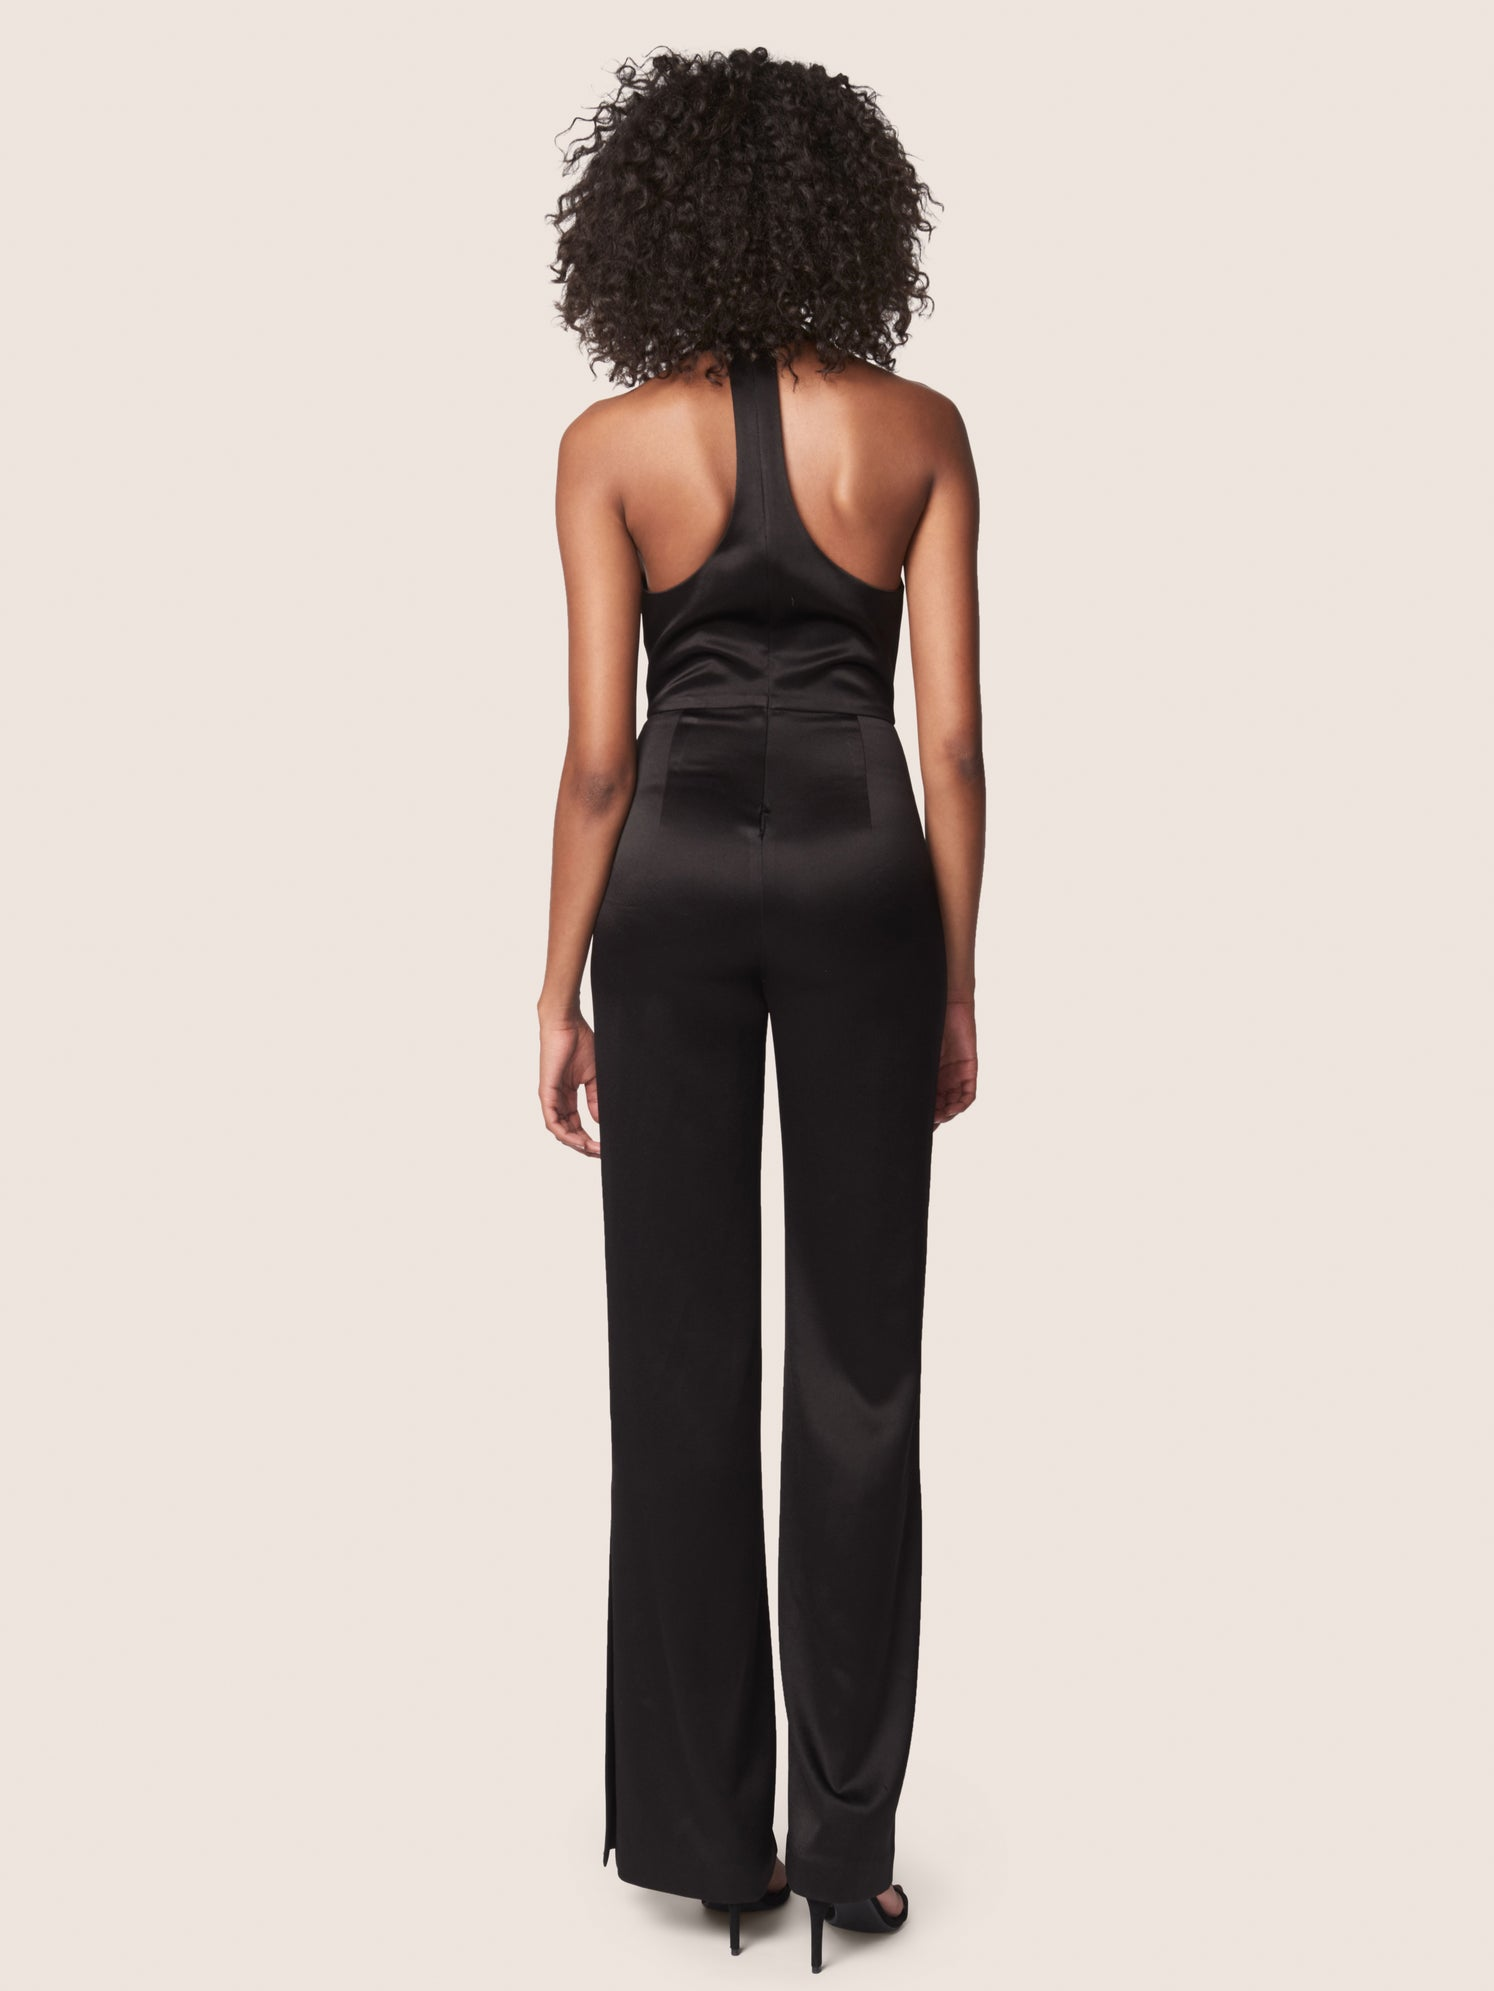 Black satin jumpsuit with deep v-neckline and racerback Alternate